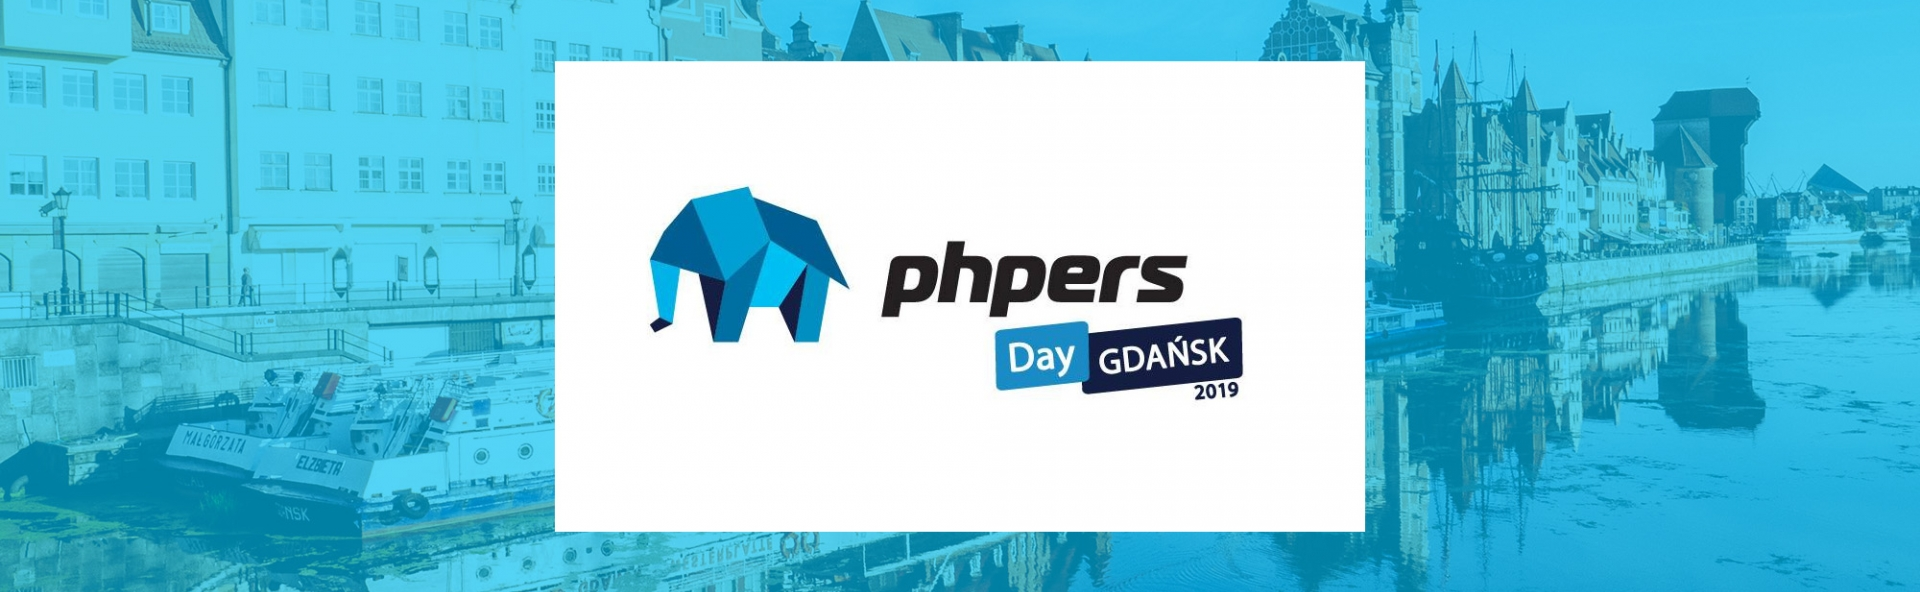 PHPers Day Gdańsk 2019